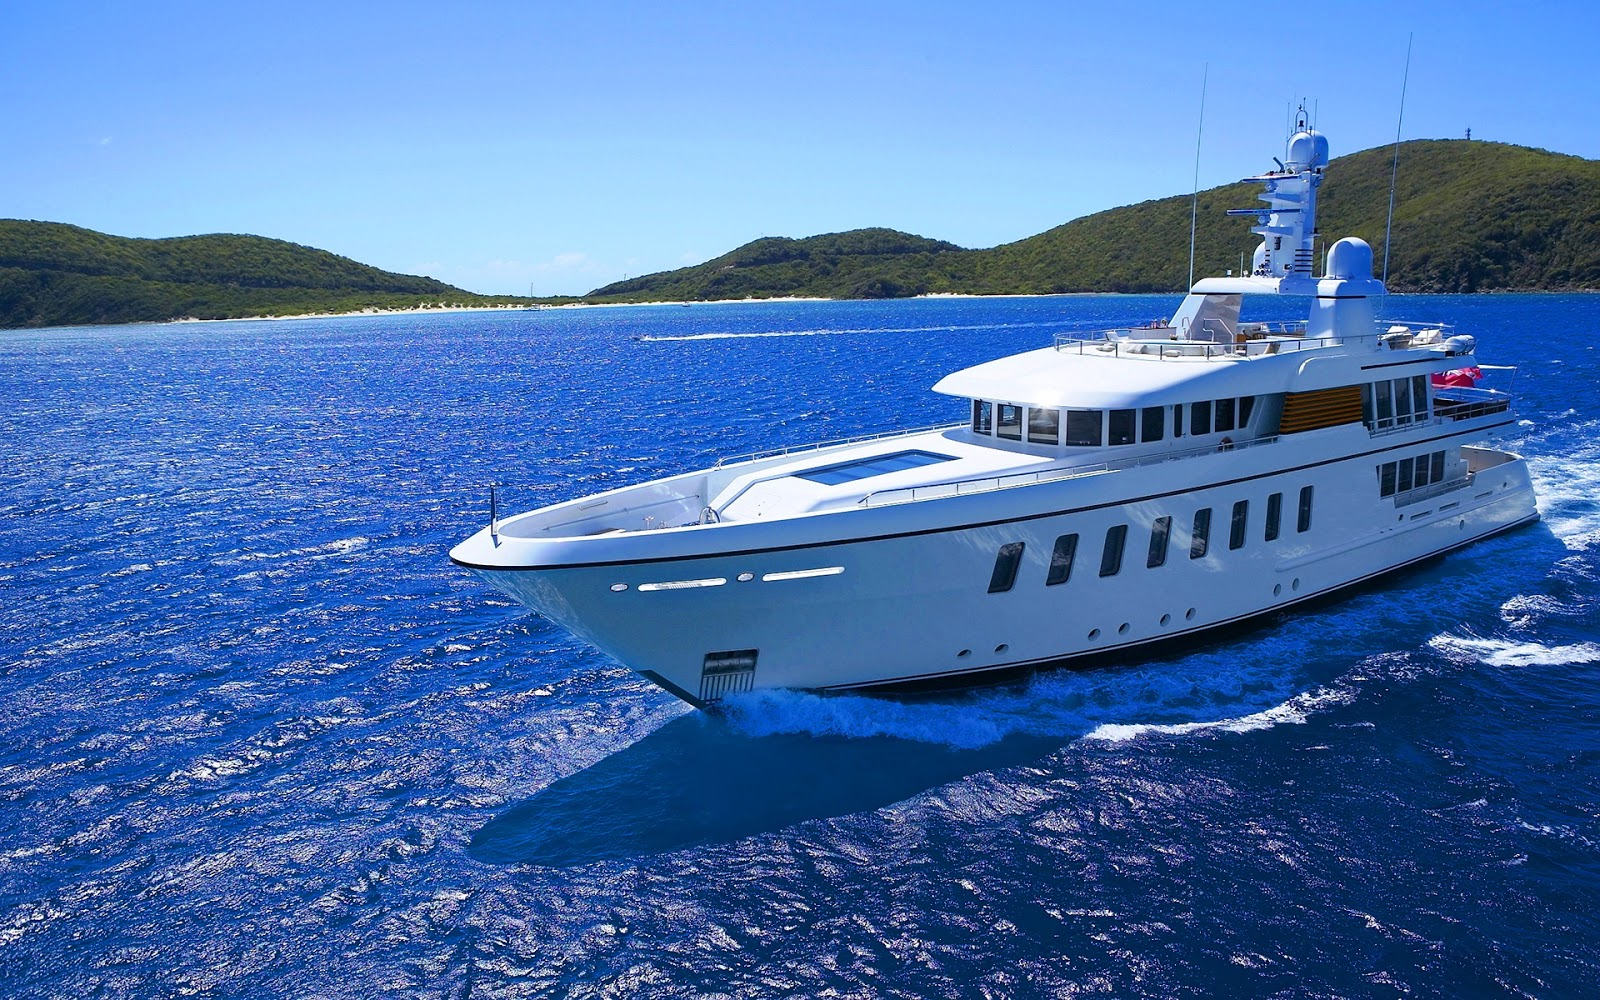 yacht pictures luxury private yachts mega yacht full hd